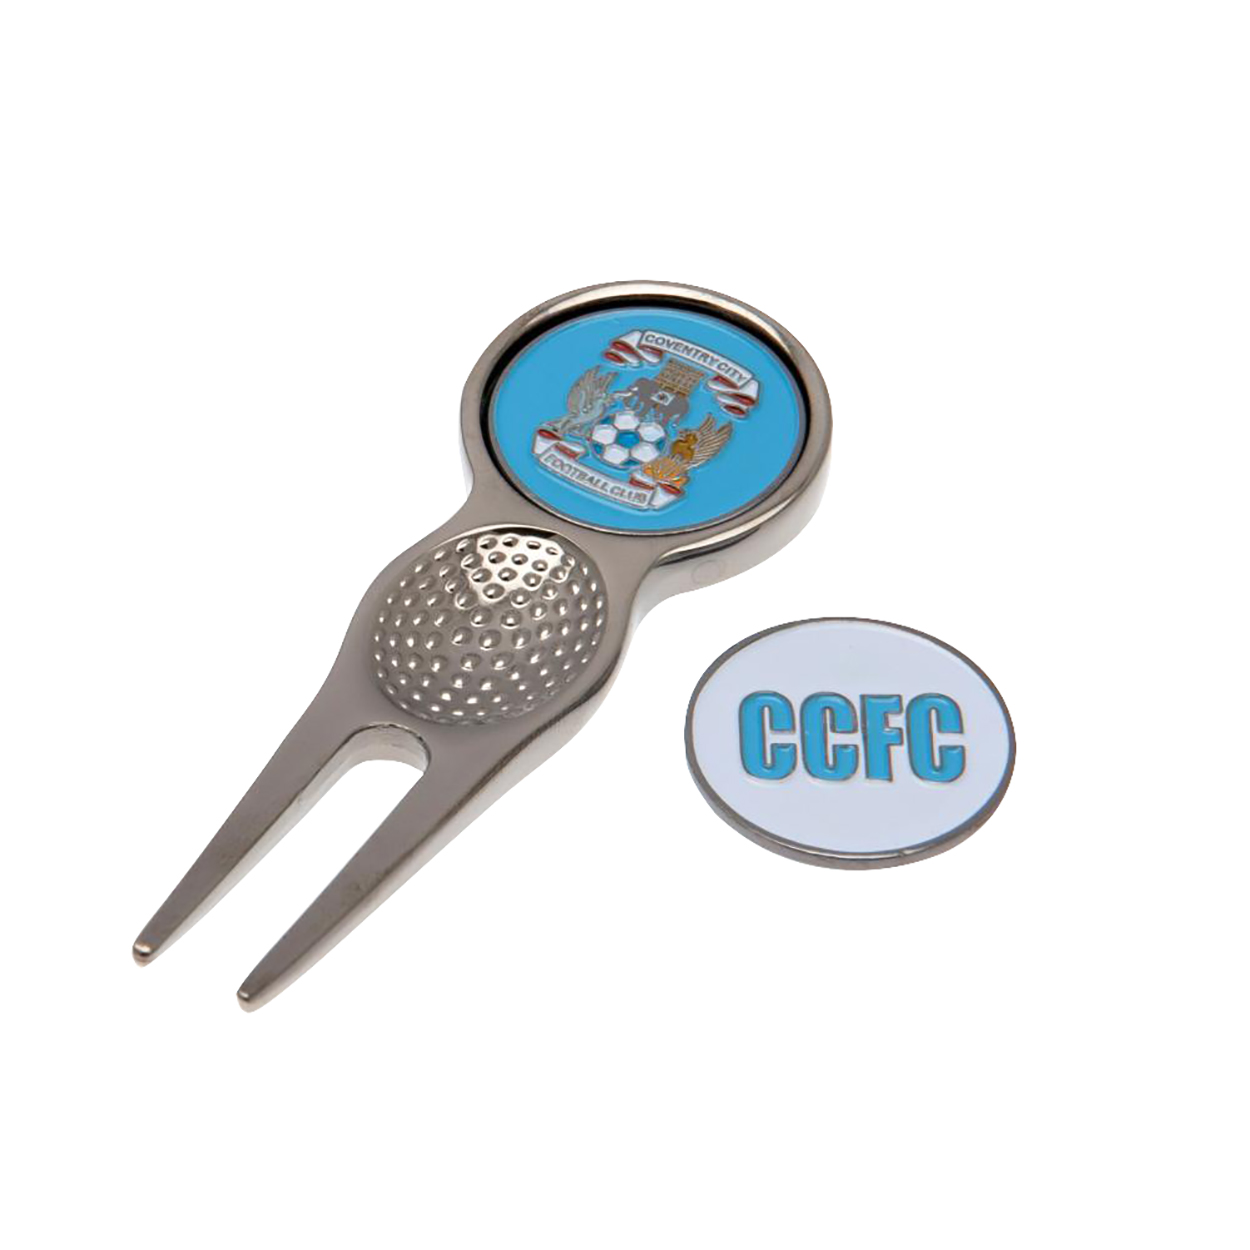 Coventry City FC Official Divot Tool With Marker (One Size) (Multicolour)